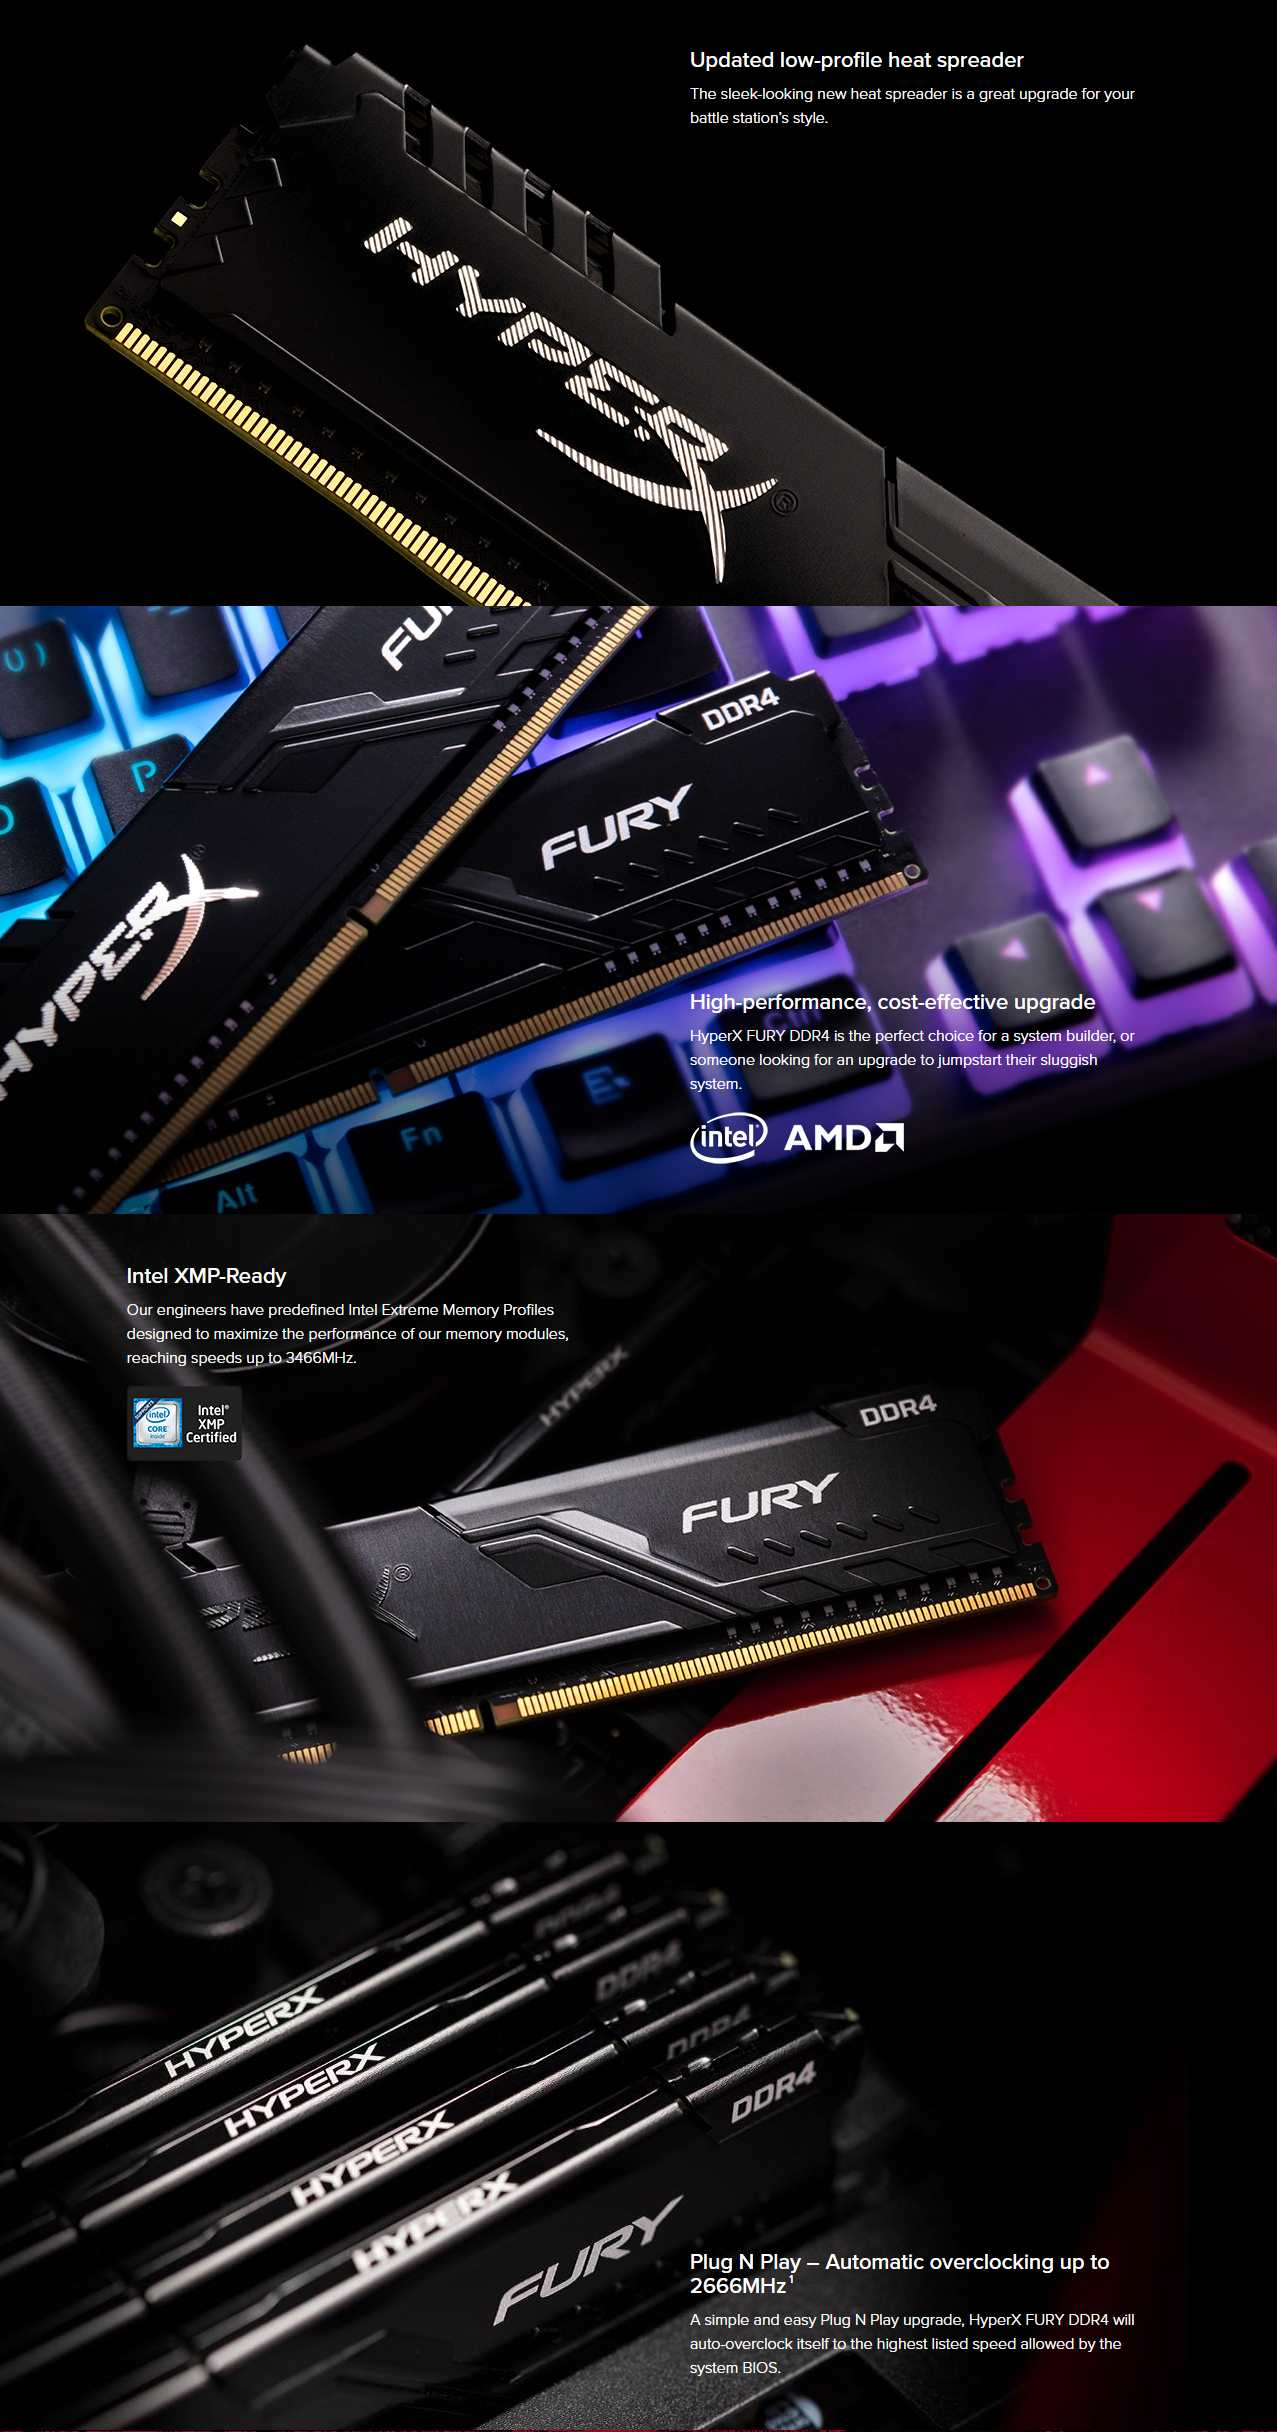 A large marketing image providing additional information about the product Kingston 32GB Kit (2x16GB) DDR4 HyperX Fury Black C18 3600MHz - Additional alt info not provided